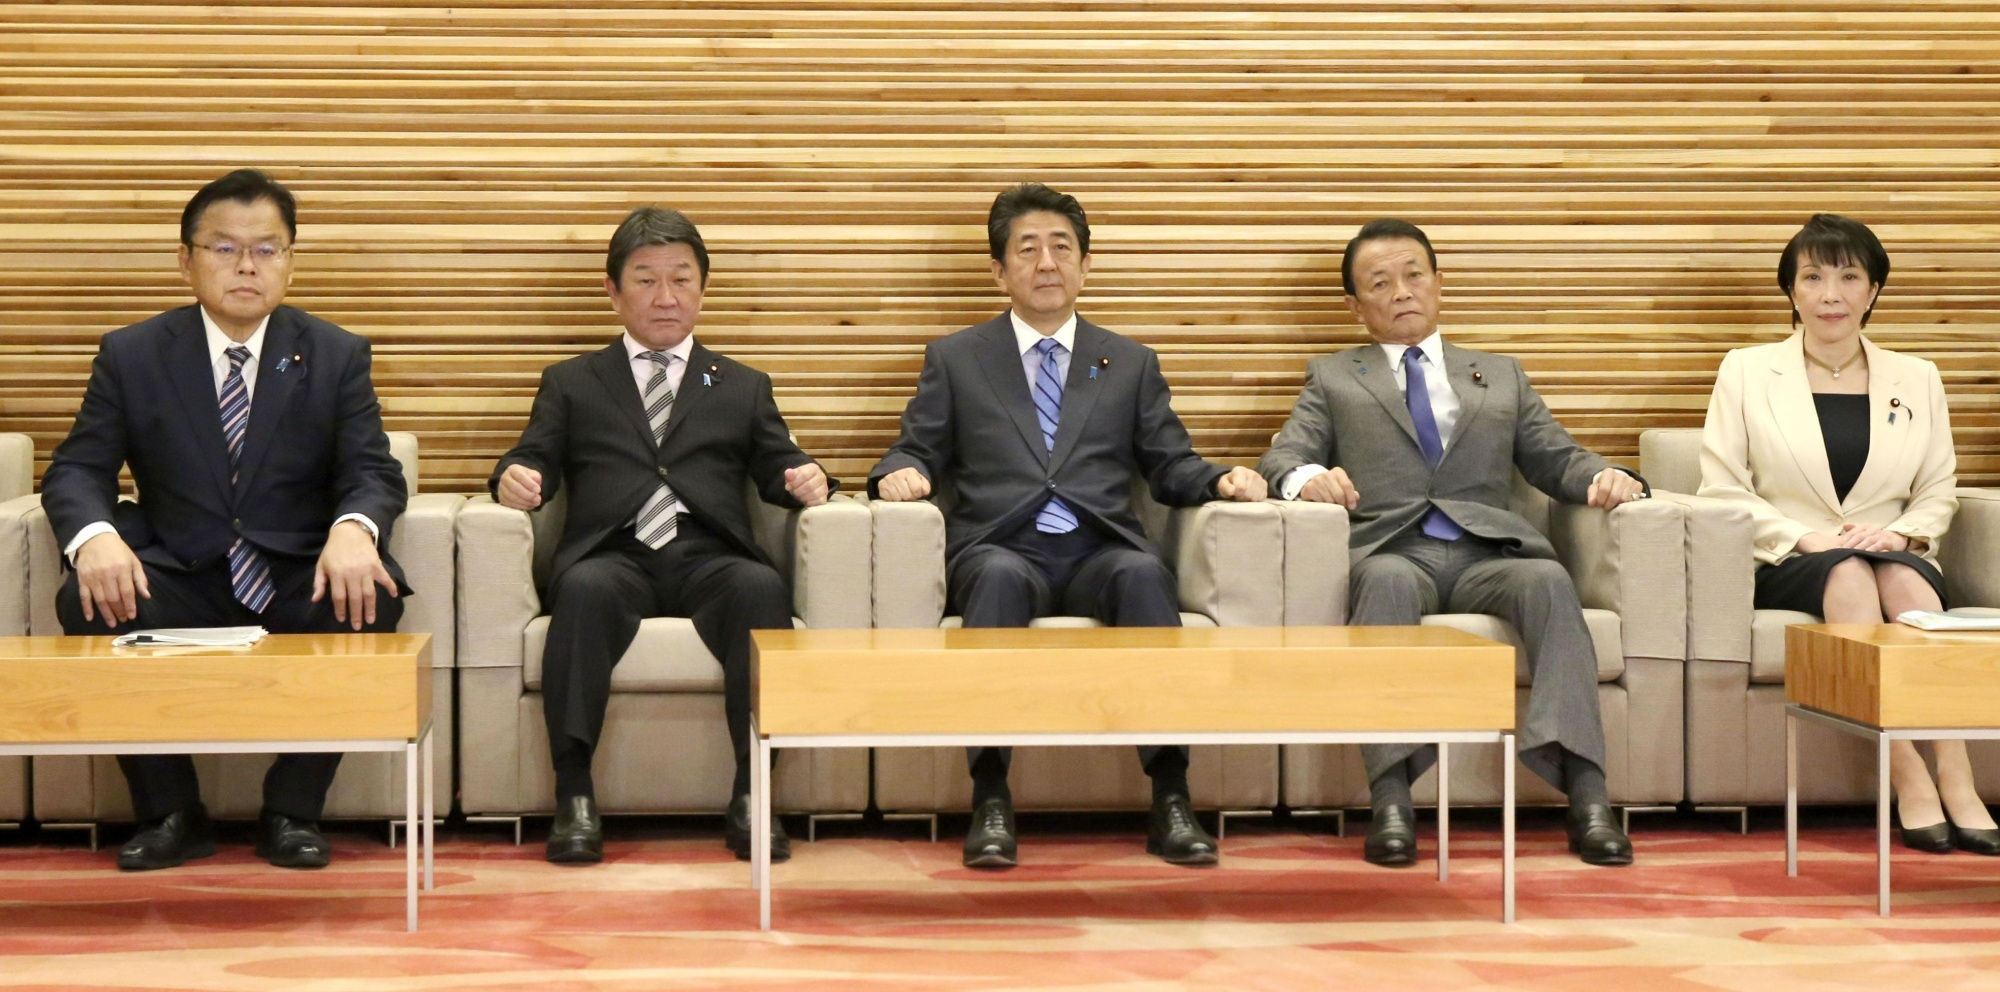 Prime Minister Shinzo Abe and other Cabinet ministers pose for a photo at the Prime Minister's Office on Tuesday before a Cabinet meeting. | KYODO